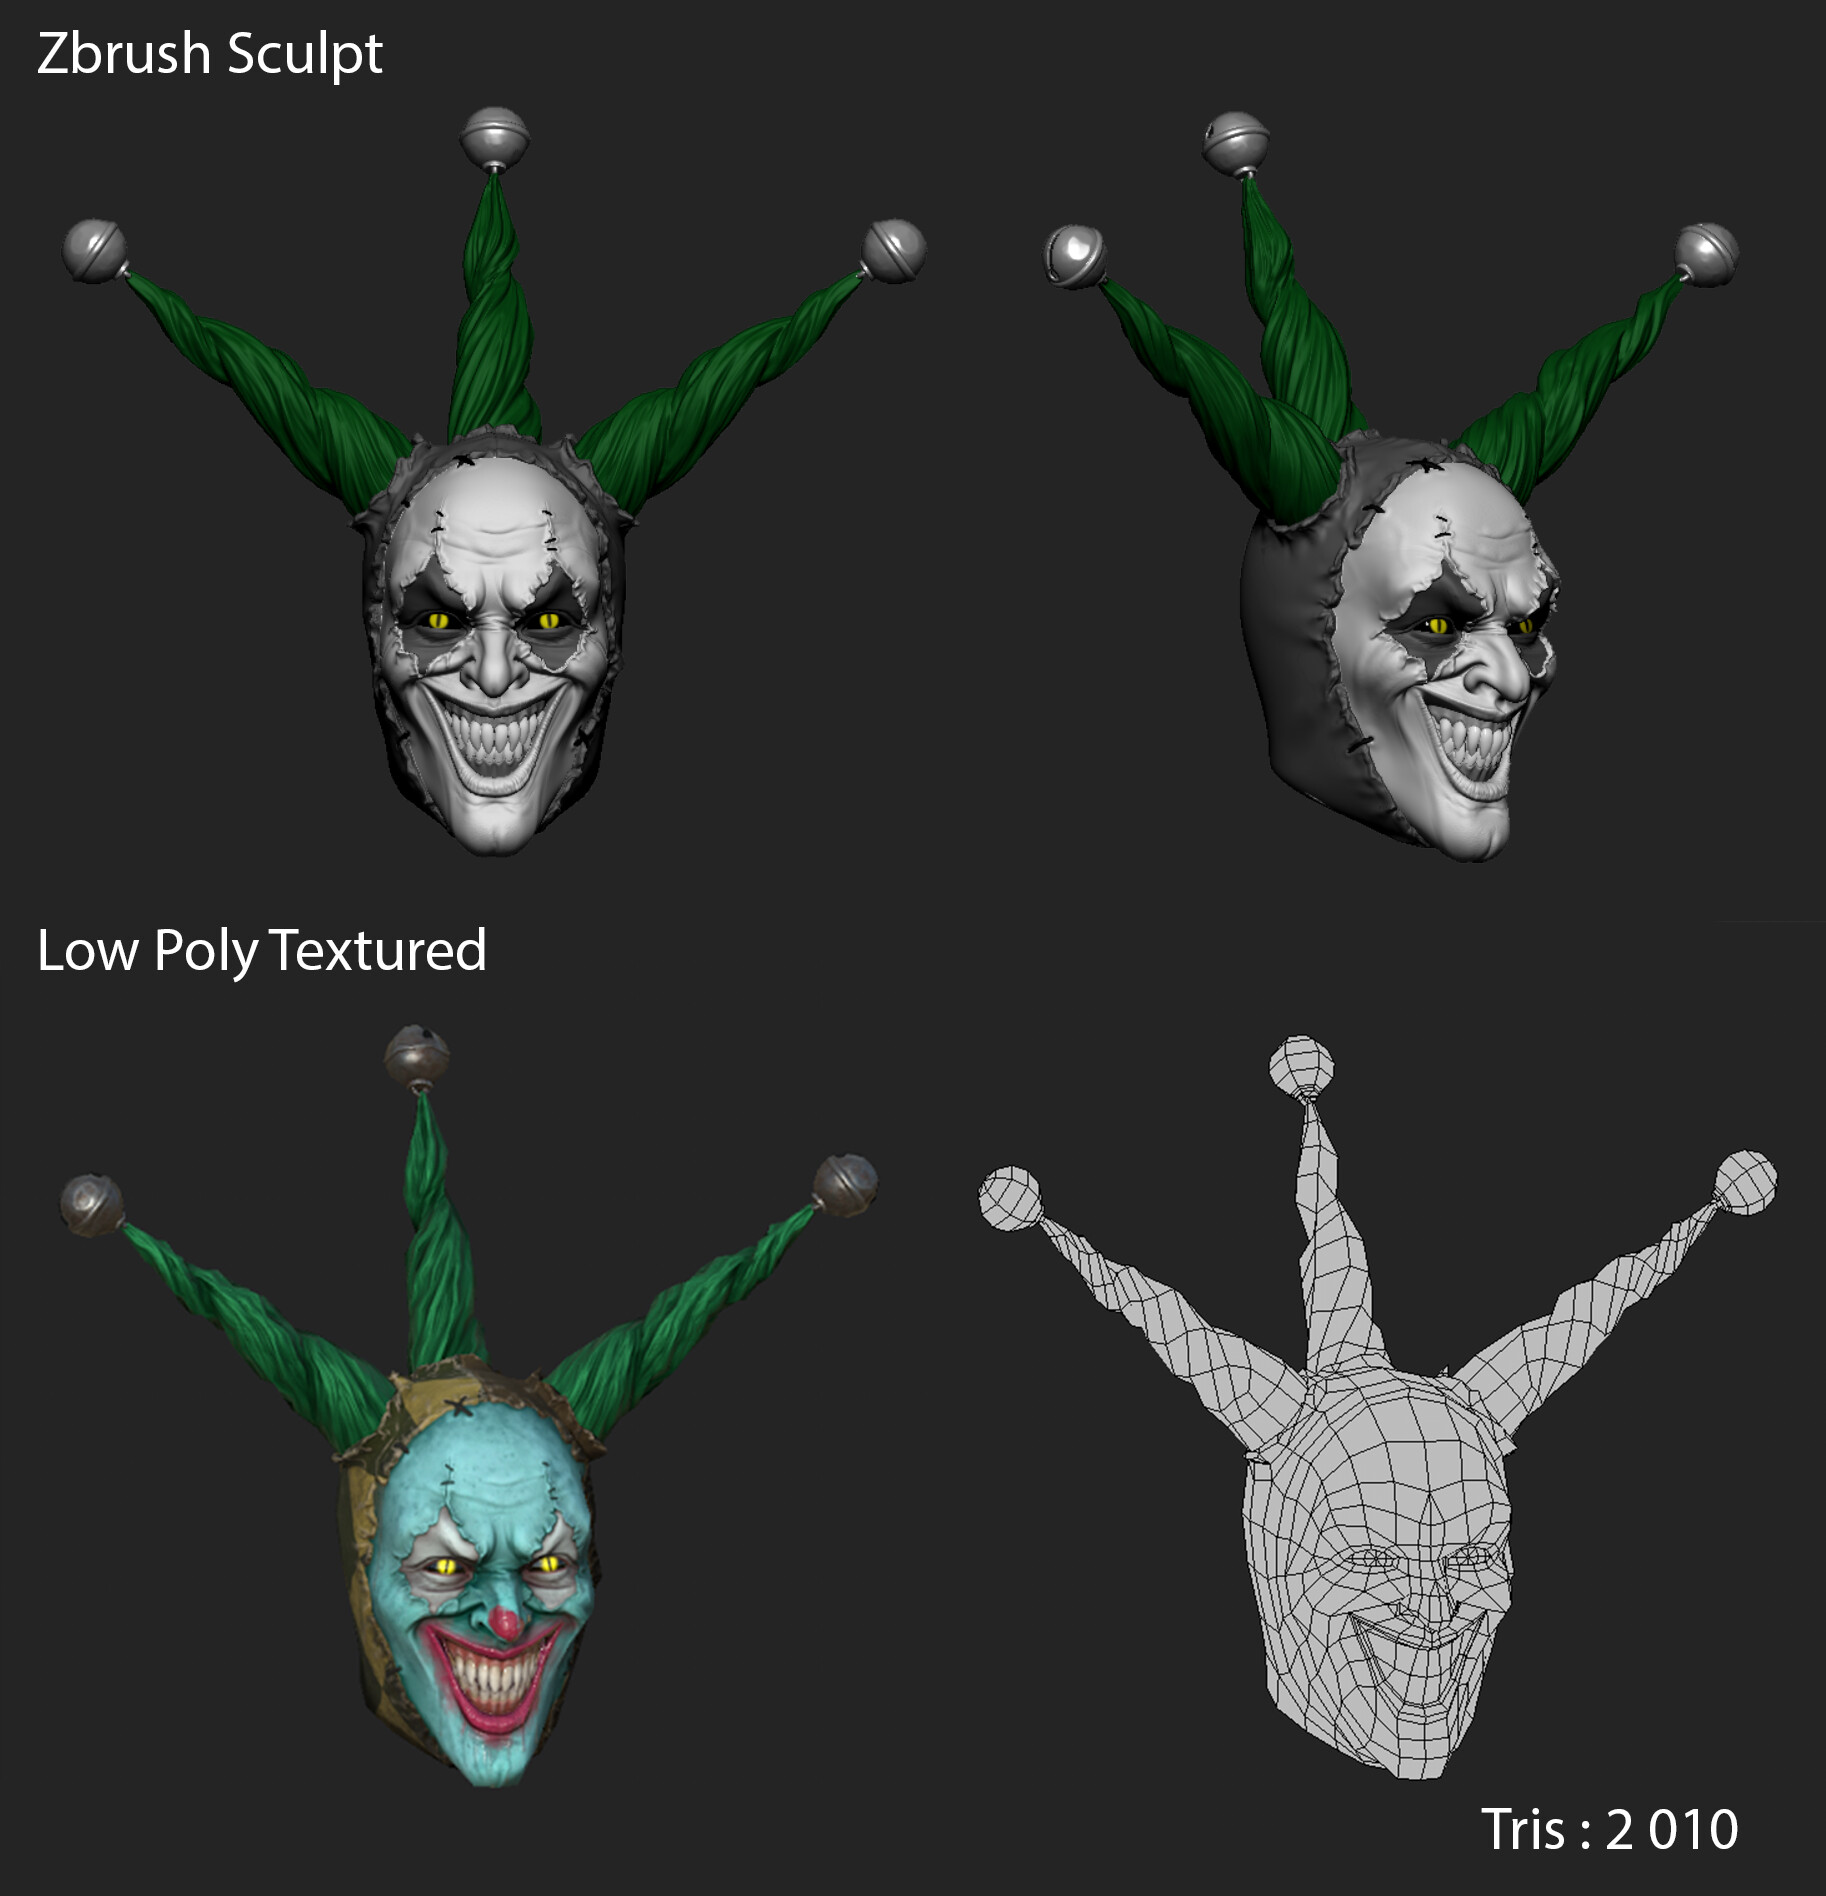 Responsible for hi poly sculpt, low poly game model, UV-ing, baking, texturing and look-dev in game engine.